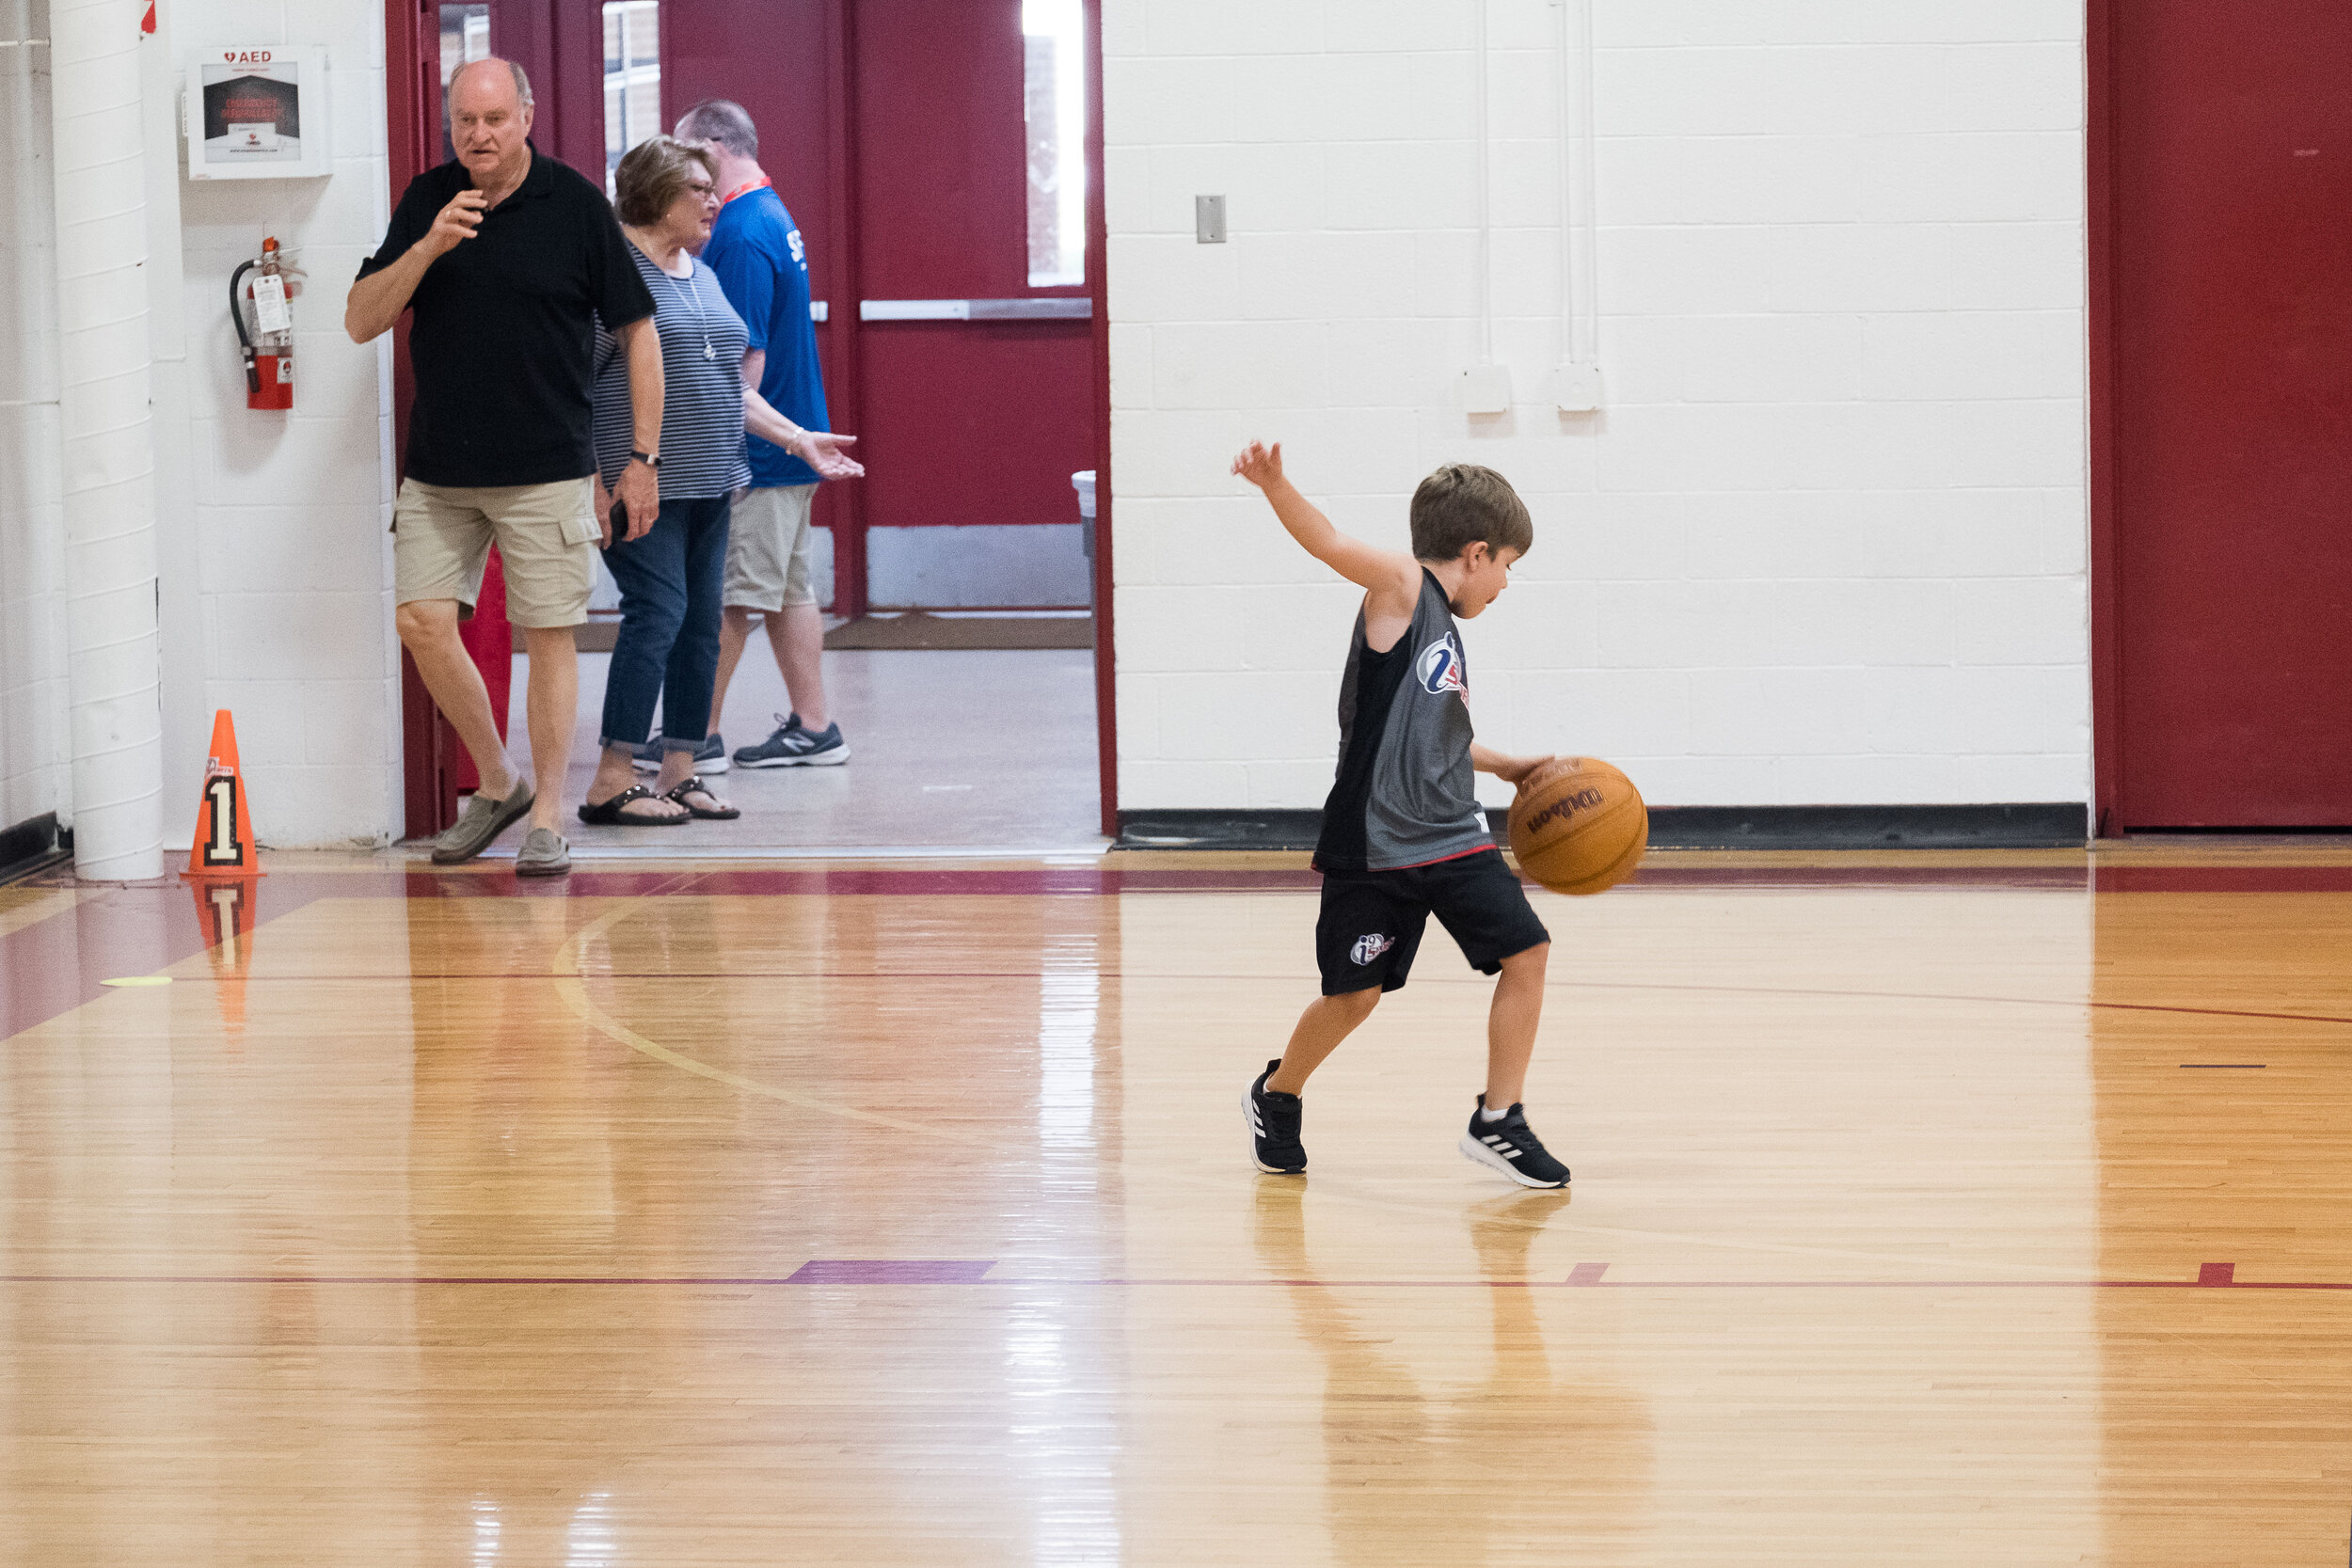 Henry now envisions a future as a basketball star.